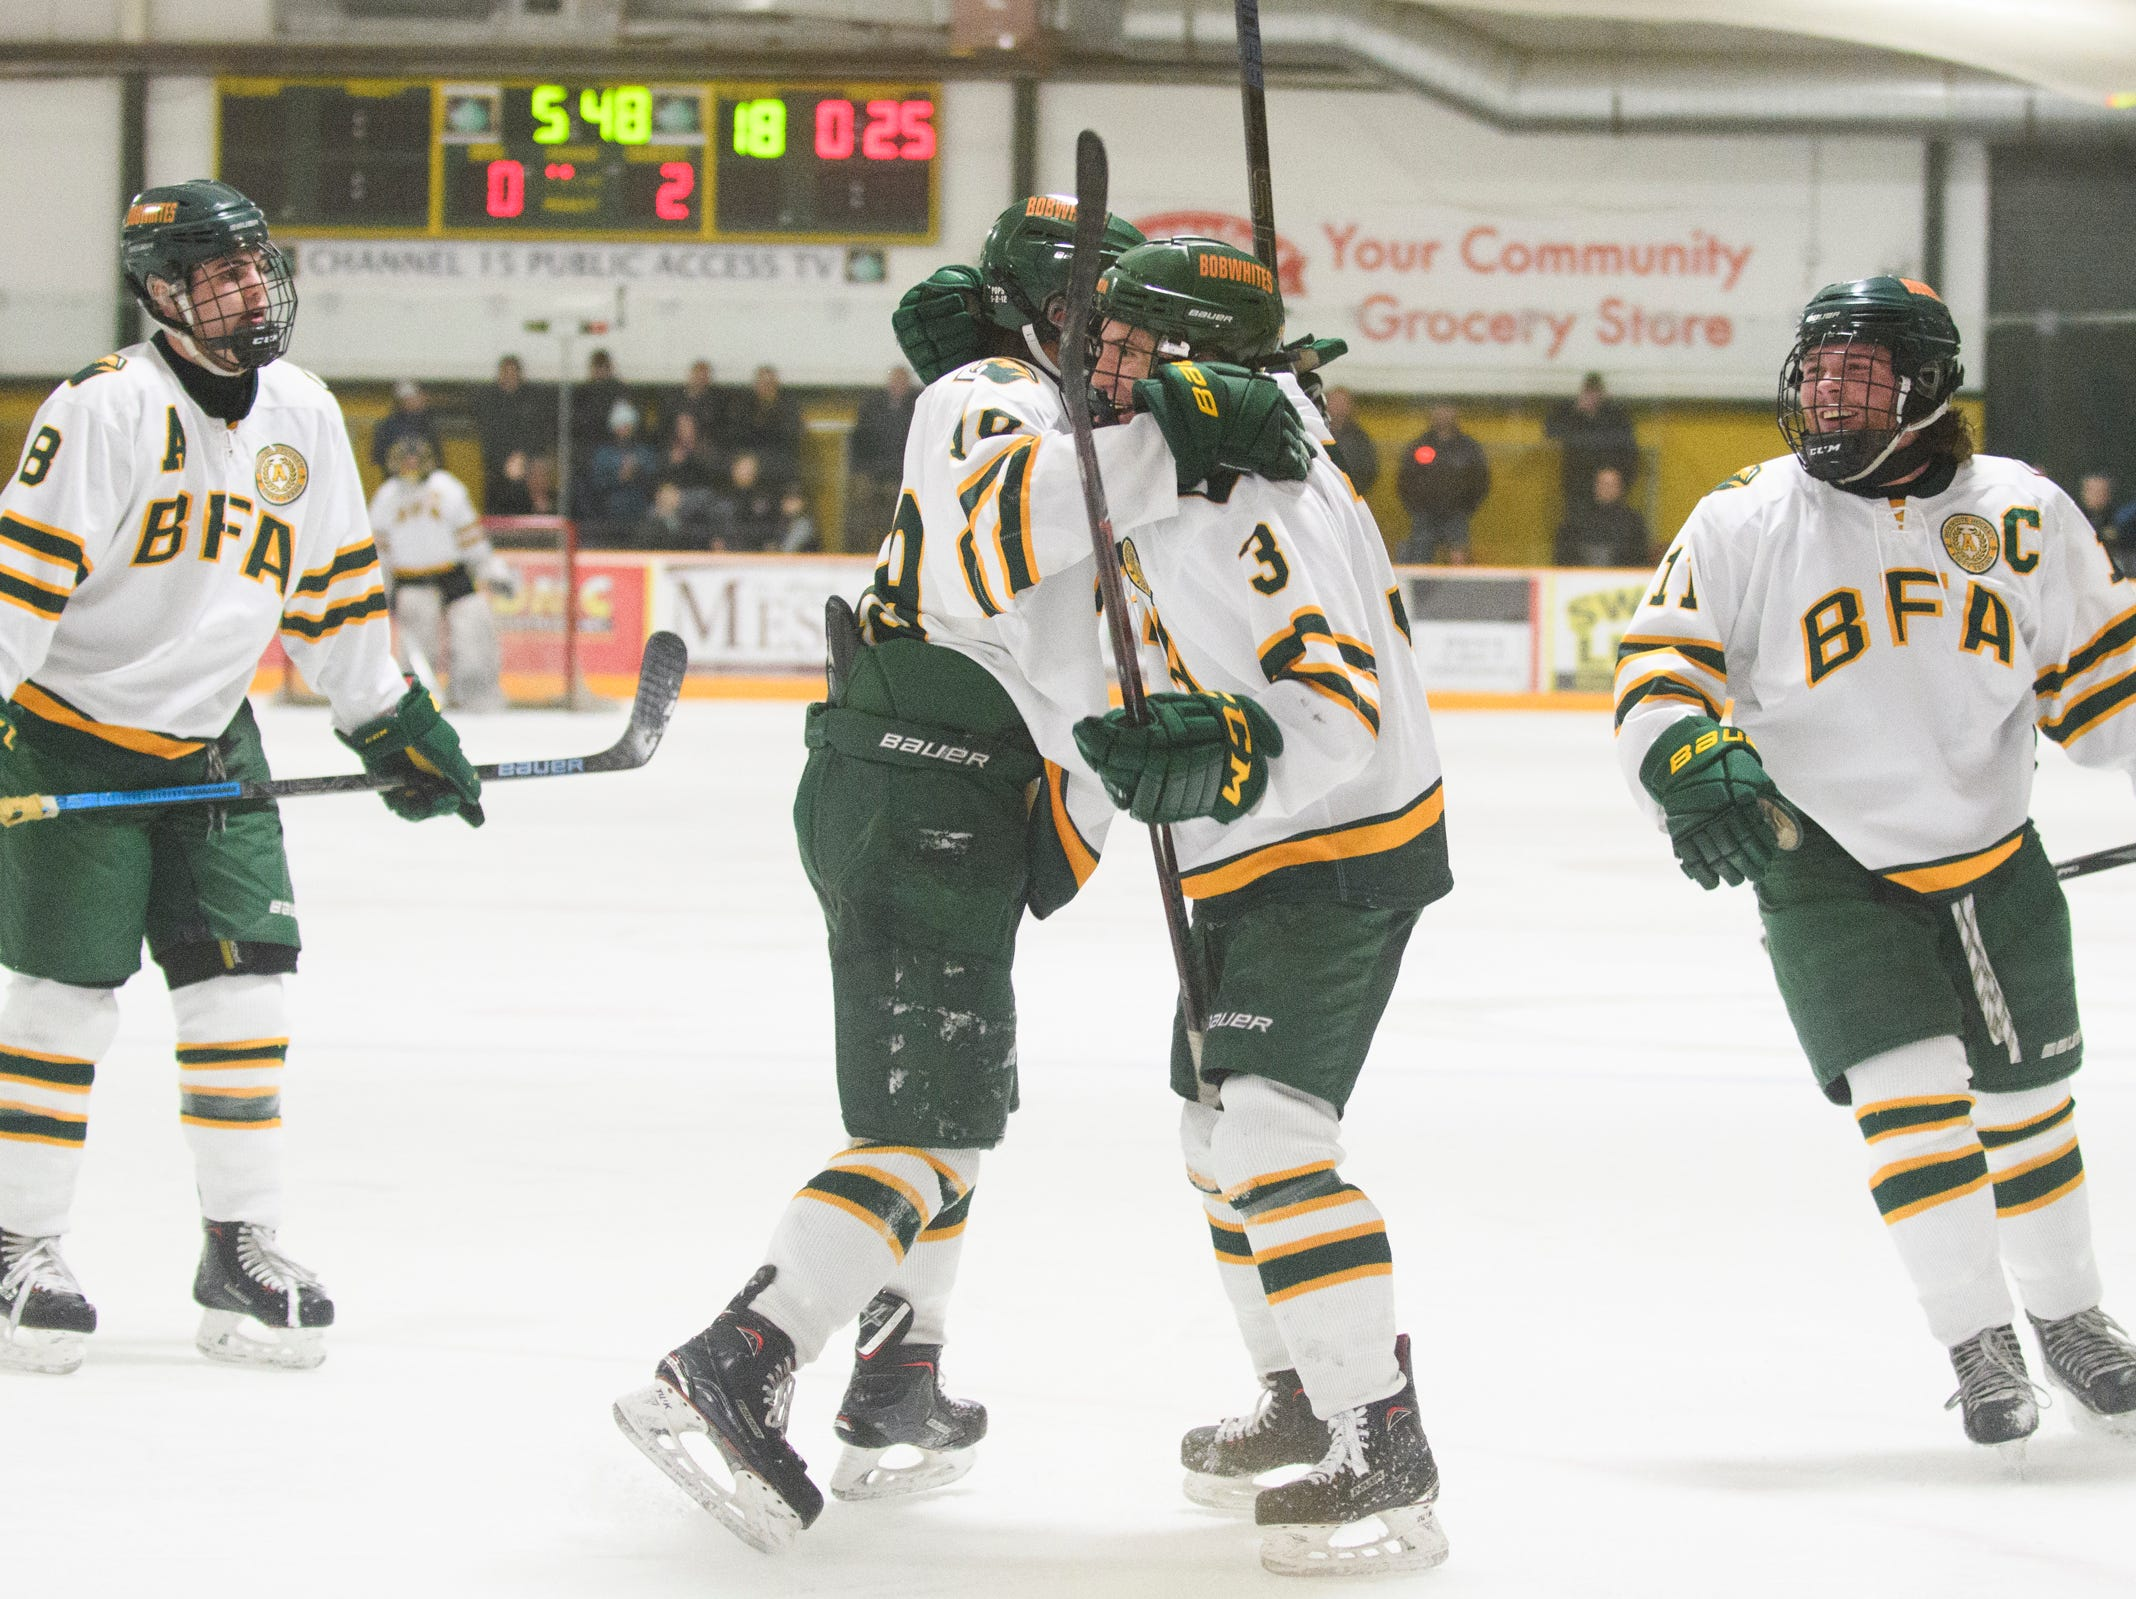 BFA celebrates a goal during the boys hockey game between the Essex Hornets and the BFA St. Albans Bobwhites at the Collins Perley sports complex on Monday night February 4, 2019 in St. Albans, Vermont.